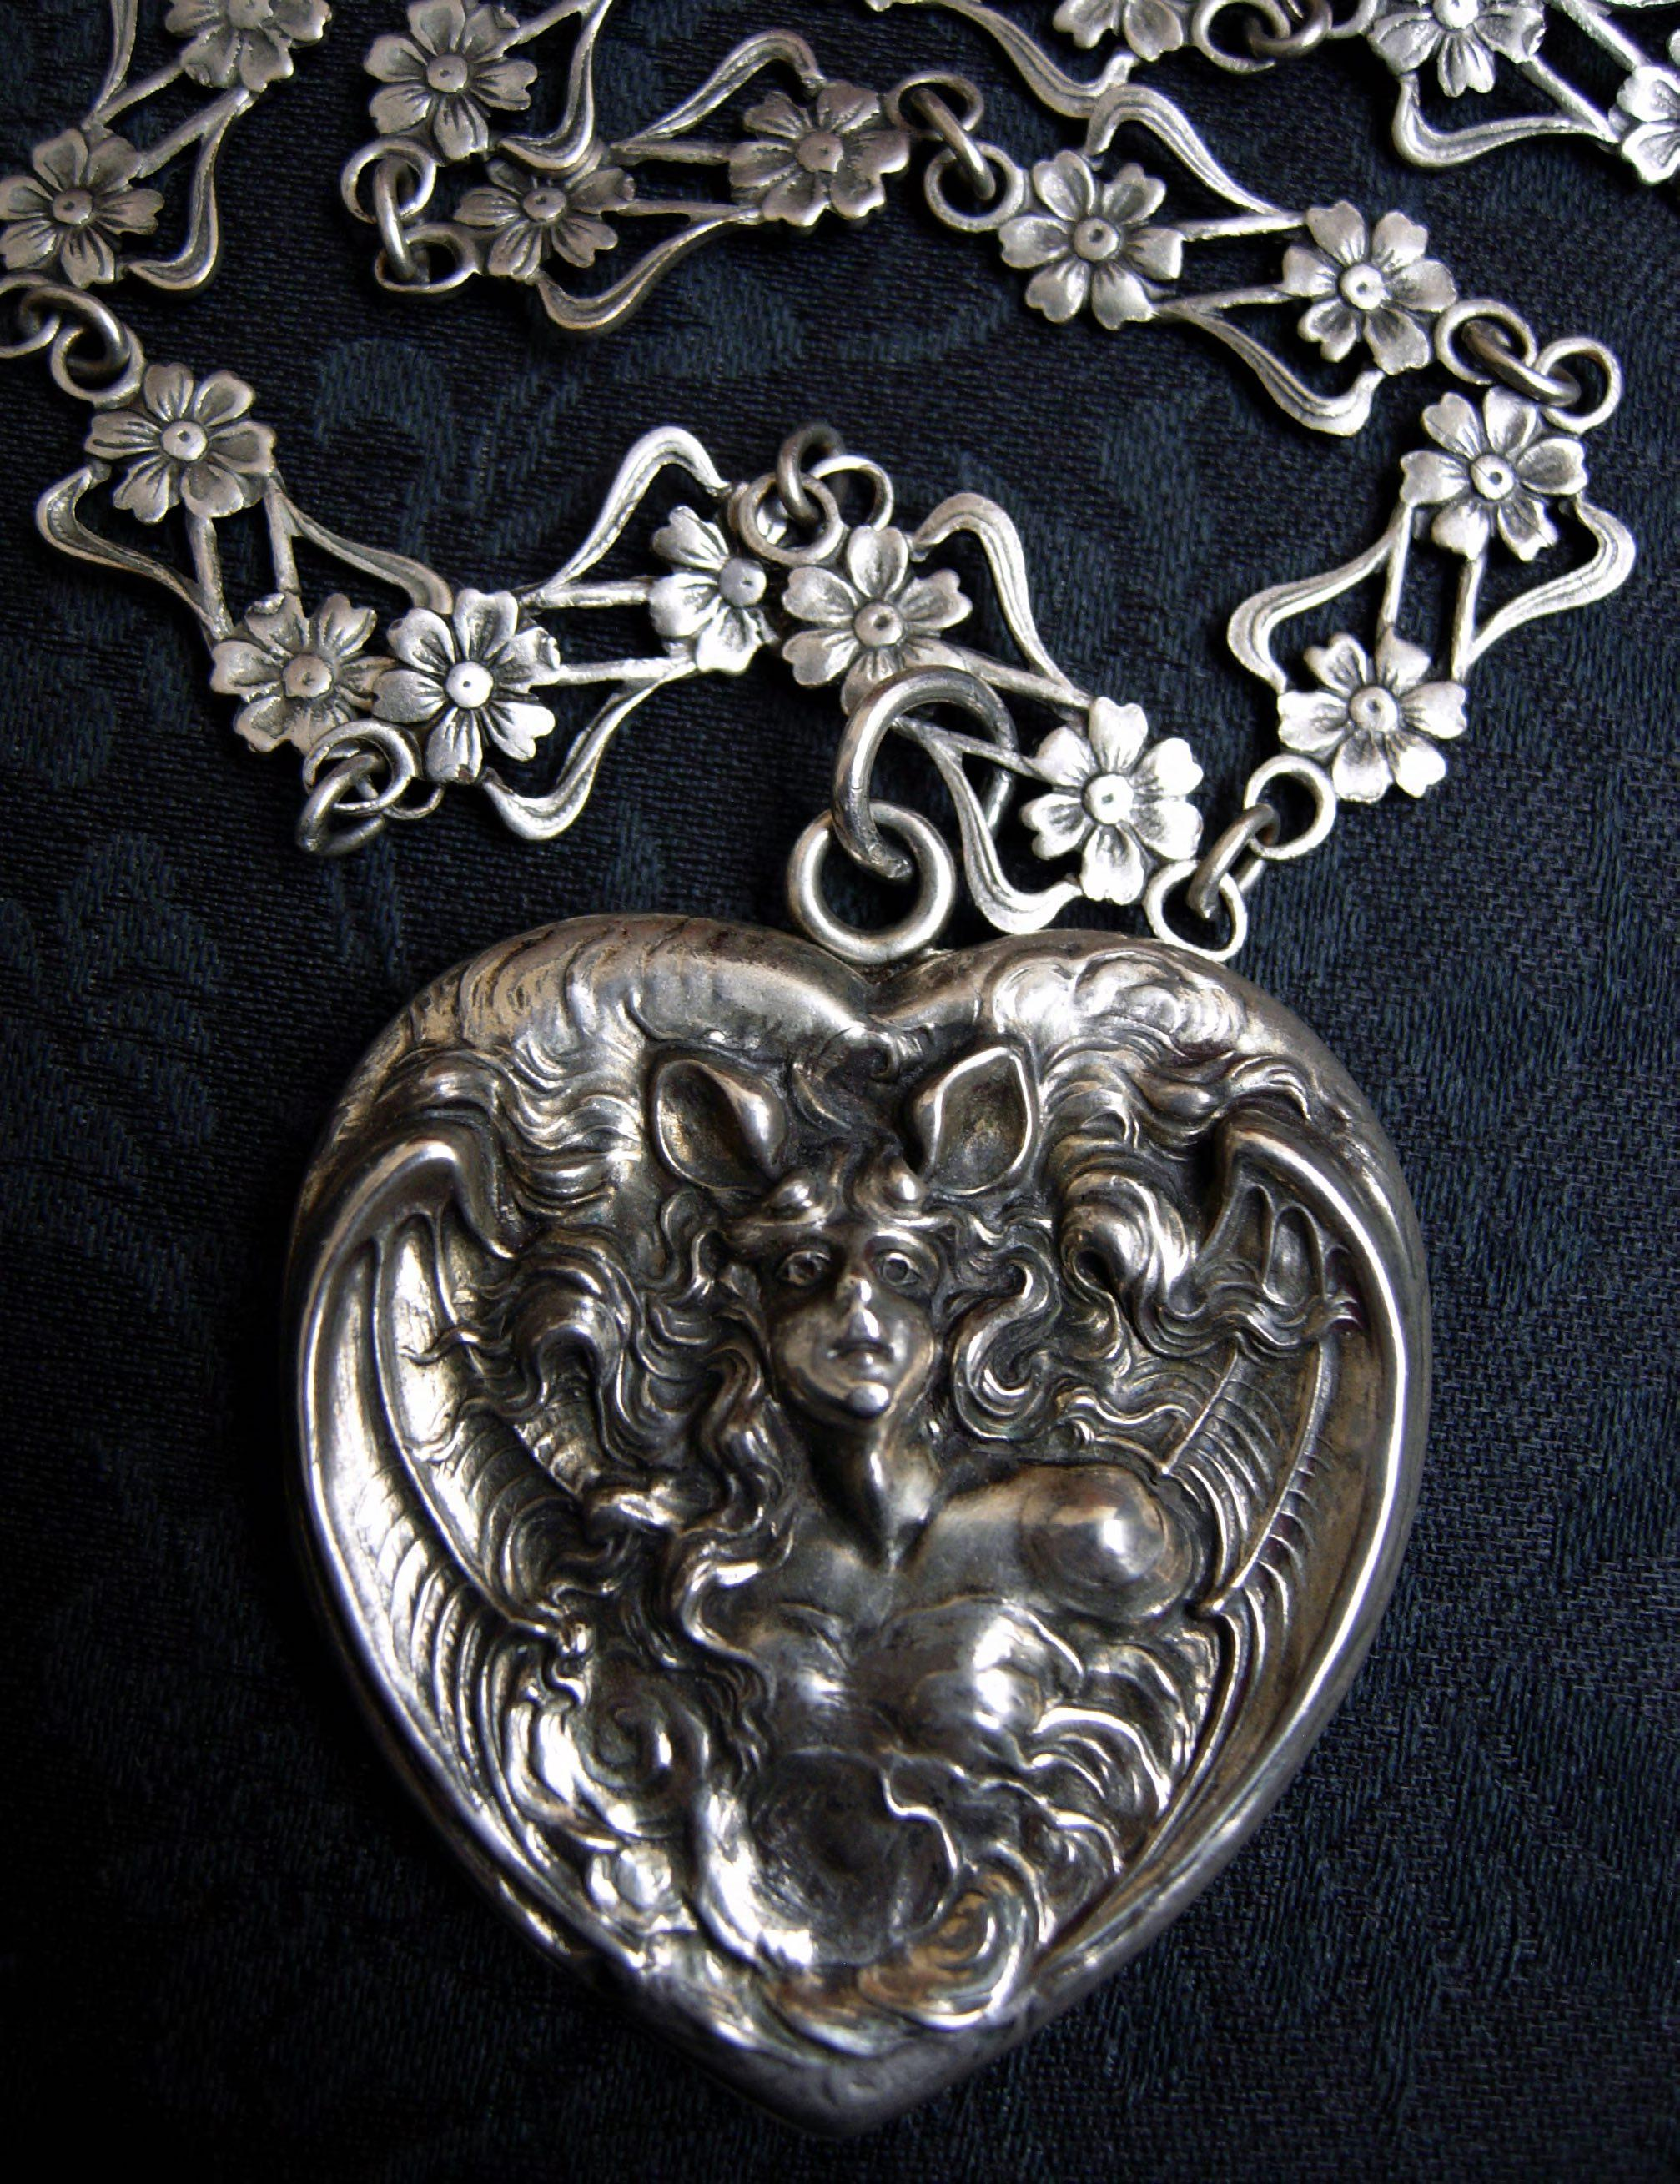 Bat Woman heart-shaped photo locket made by Unger Brothers, paired with a handmade antique silver French Art Nouveau sautoir chain with floral filigree design, circa 1900.